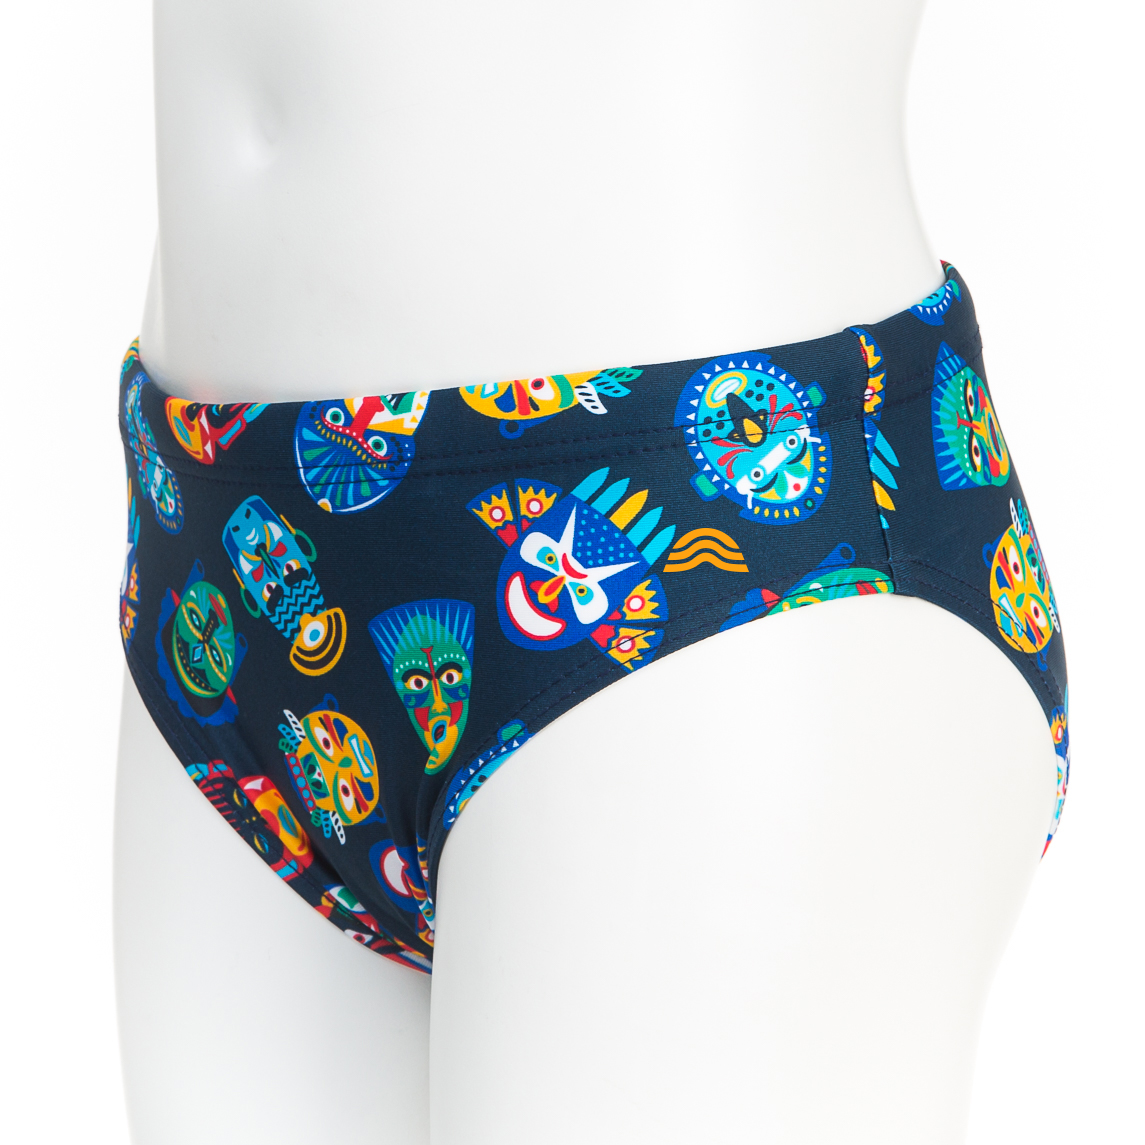 Costumi nuoto, costumi da bagno, accessori piscina | Aquarapid shop ...